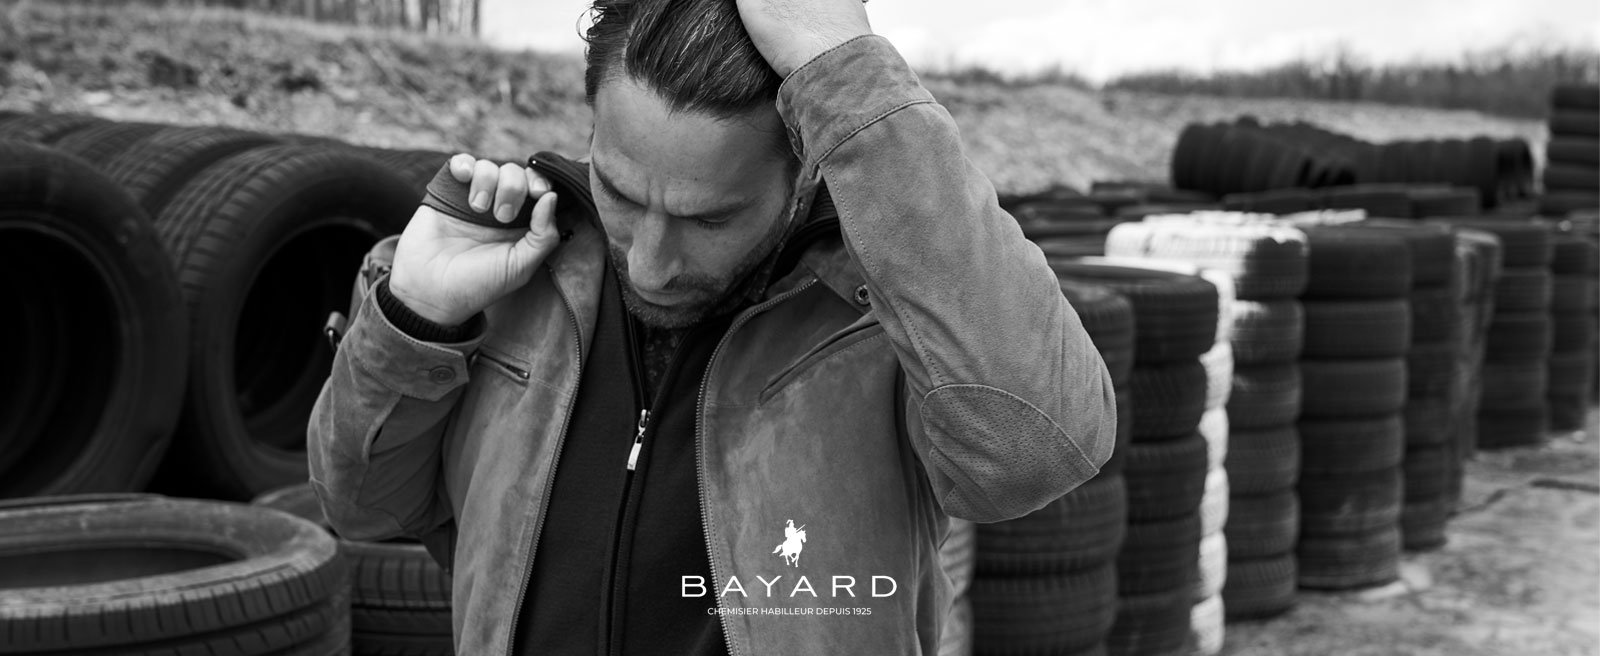 Boutique Bayard - Honfleur Normandy Outlet